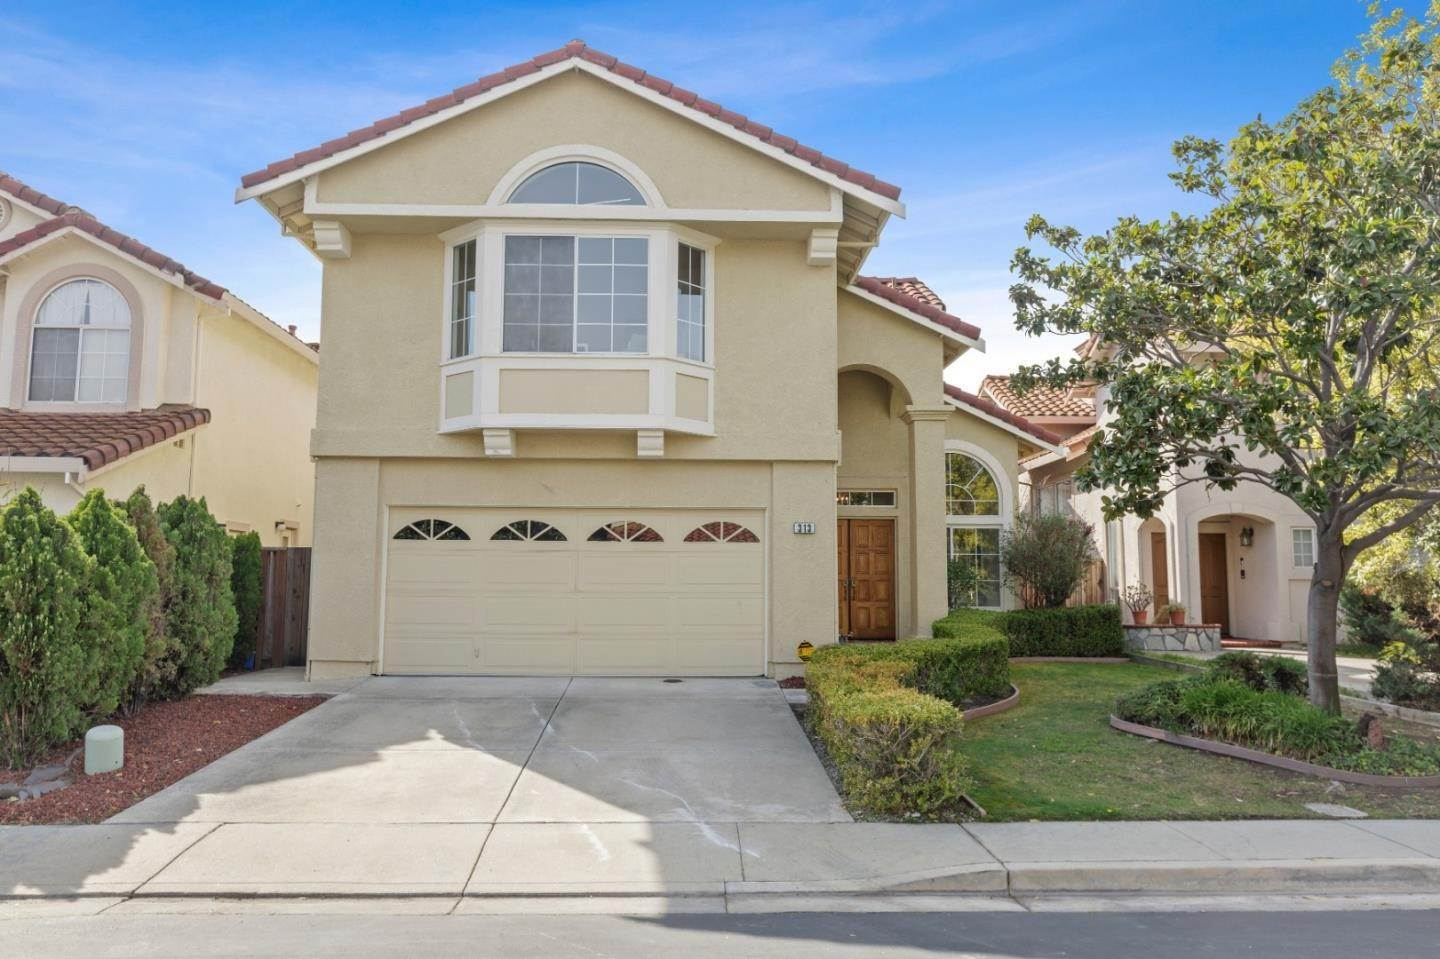 Single Family Homes for Sale at 313 Silverlake Court Milpitas, California 95035 United States